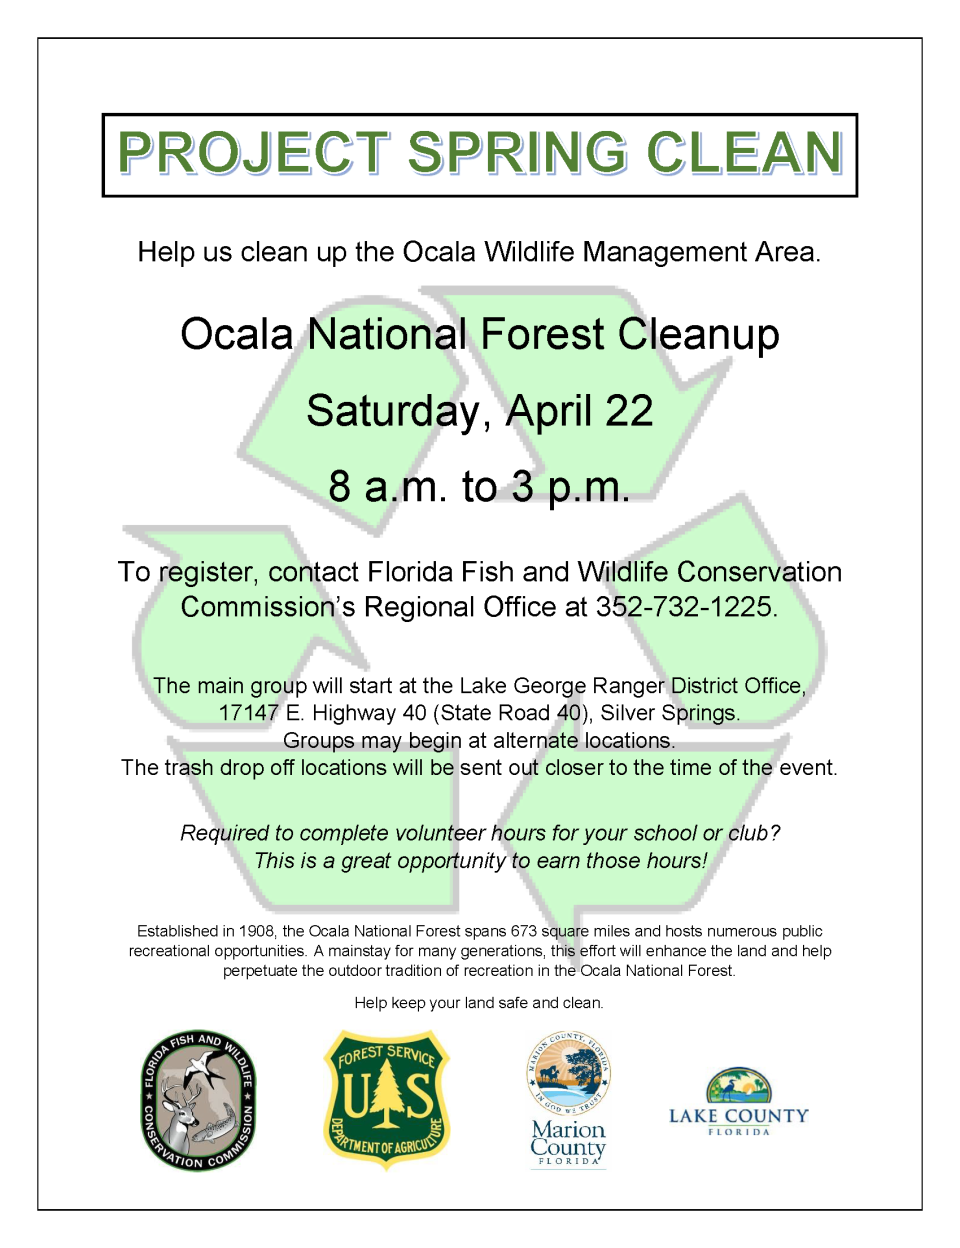 2017 Project Spring Clean FWC flyer revsm